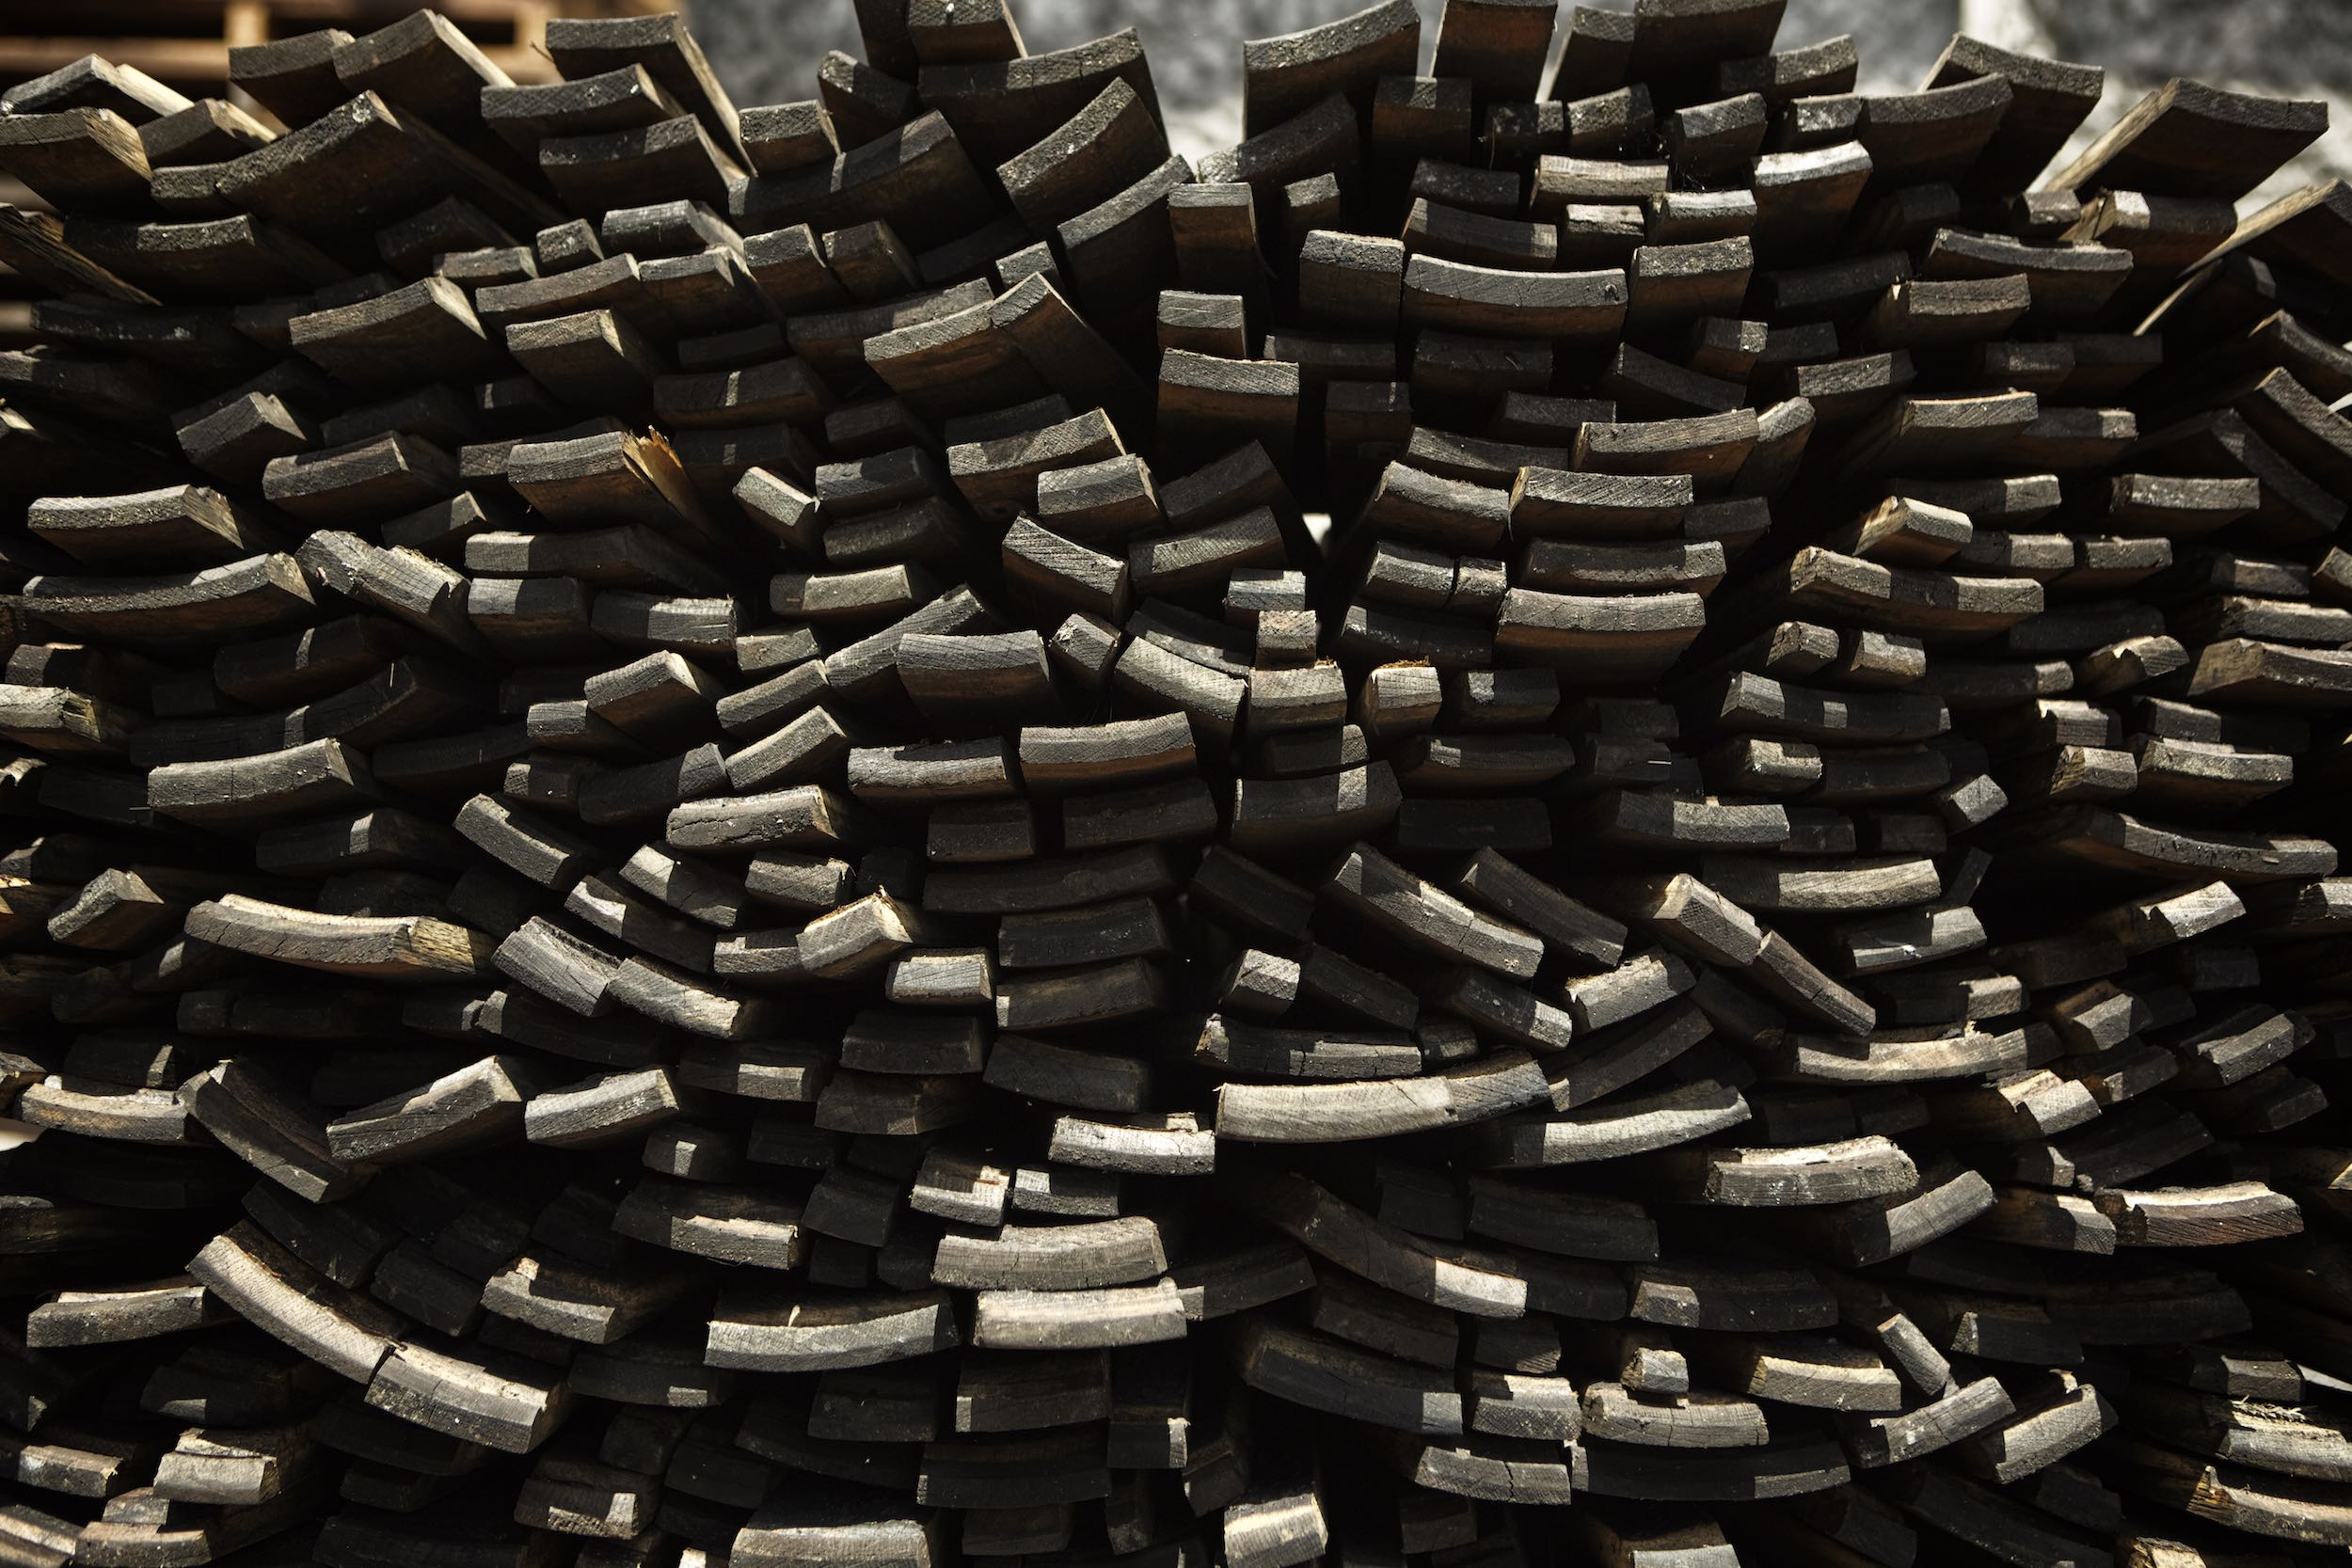 Jody Horton Photography - Stack of burned barrel staves for Rhum in Martinique.